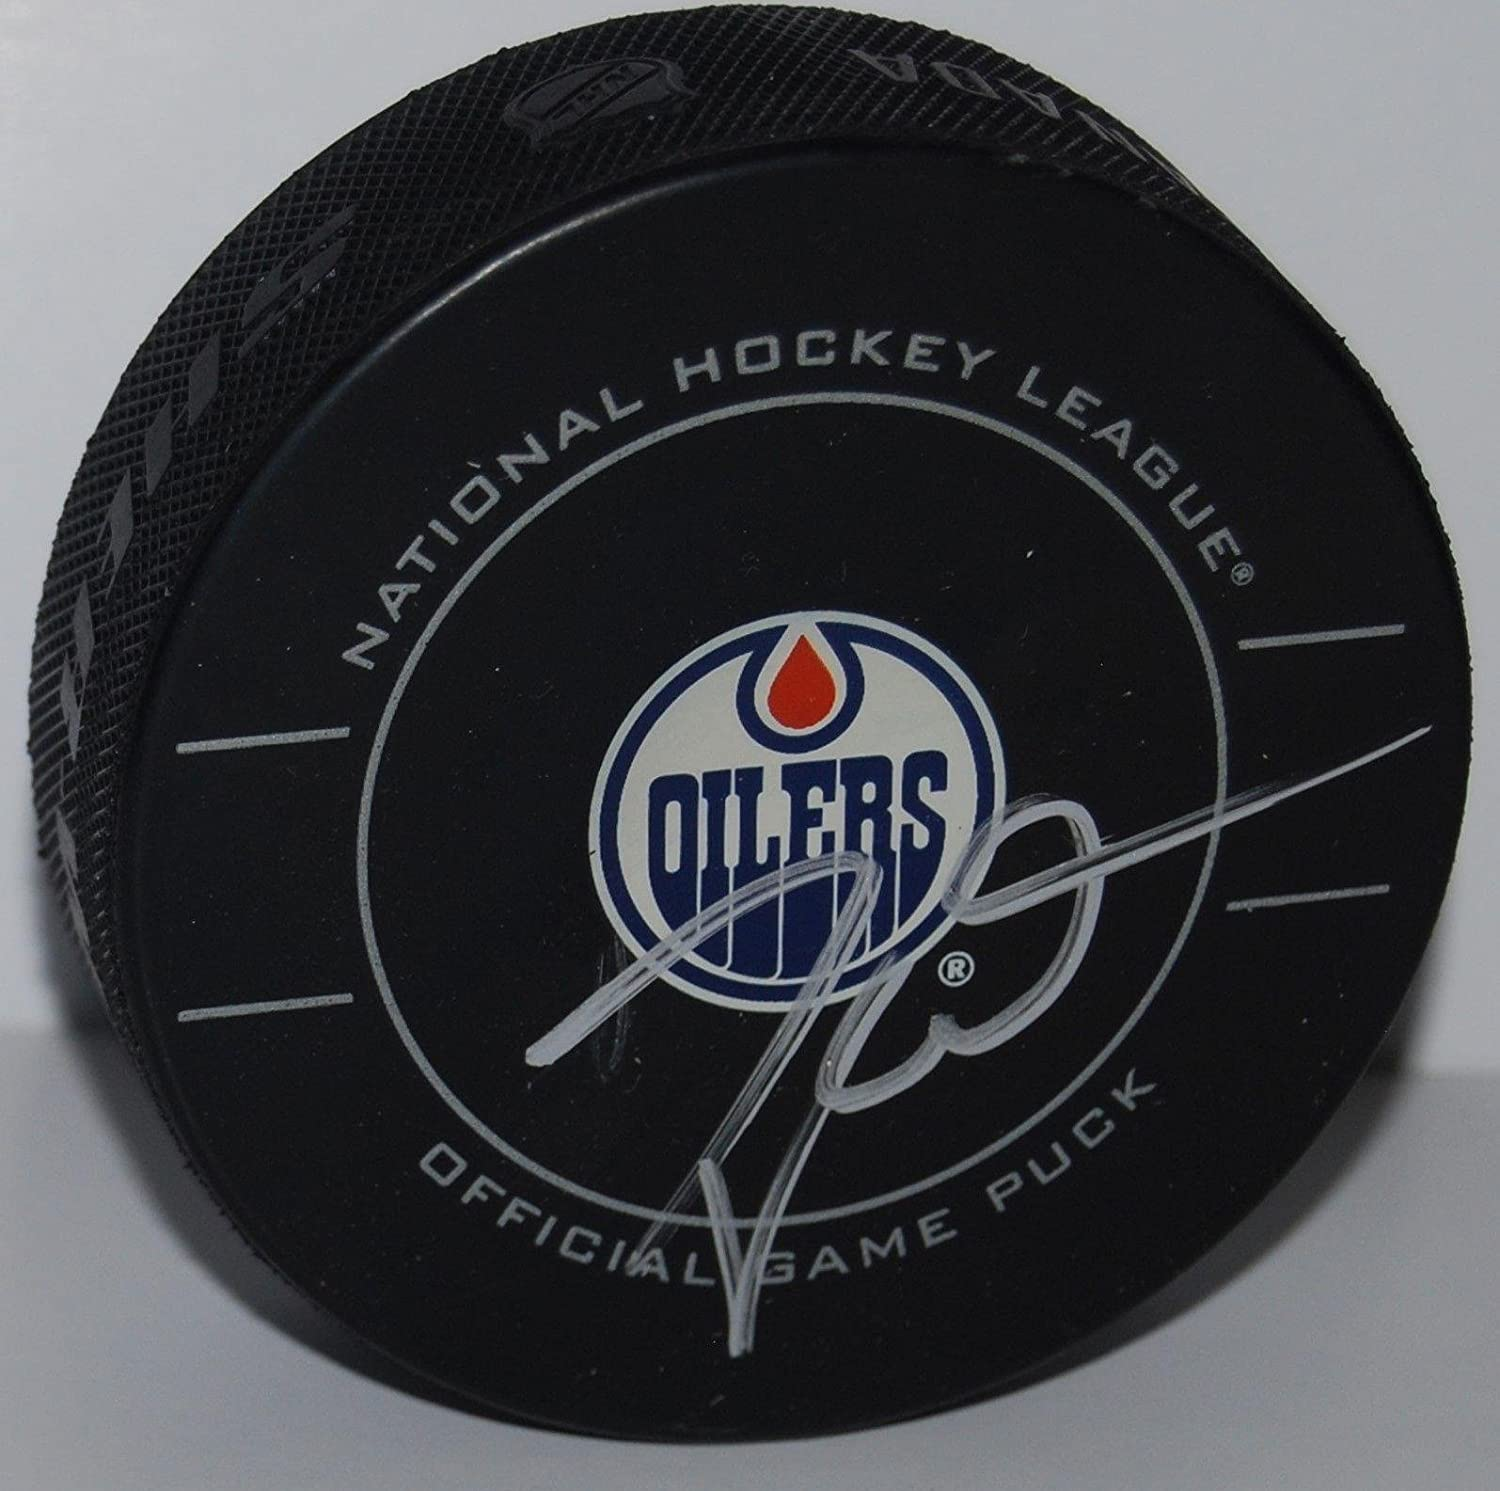 Taylor Hall Signed Hockey Puck - Official W COA #2 - Autographed NHL Pucks